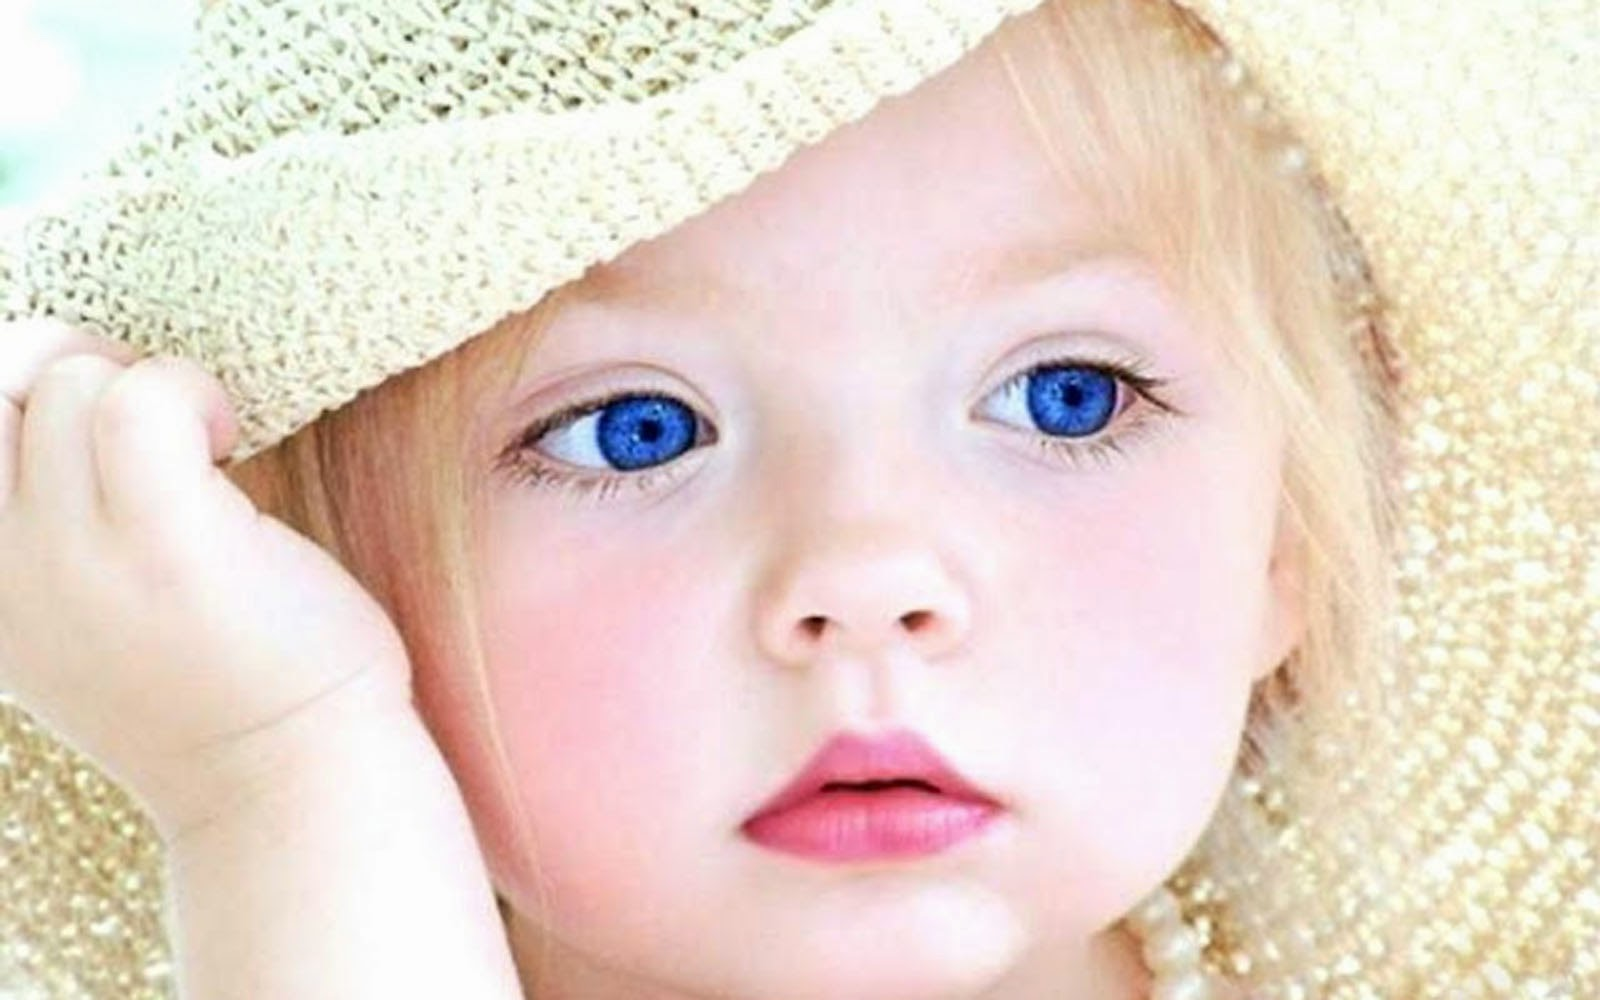 Cute Baby Wallpapers Free Download: Cute Baby Wallpapers Free Download